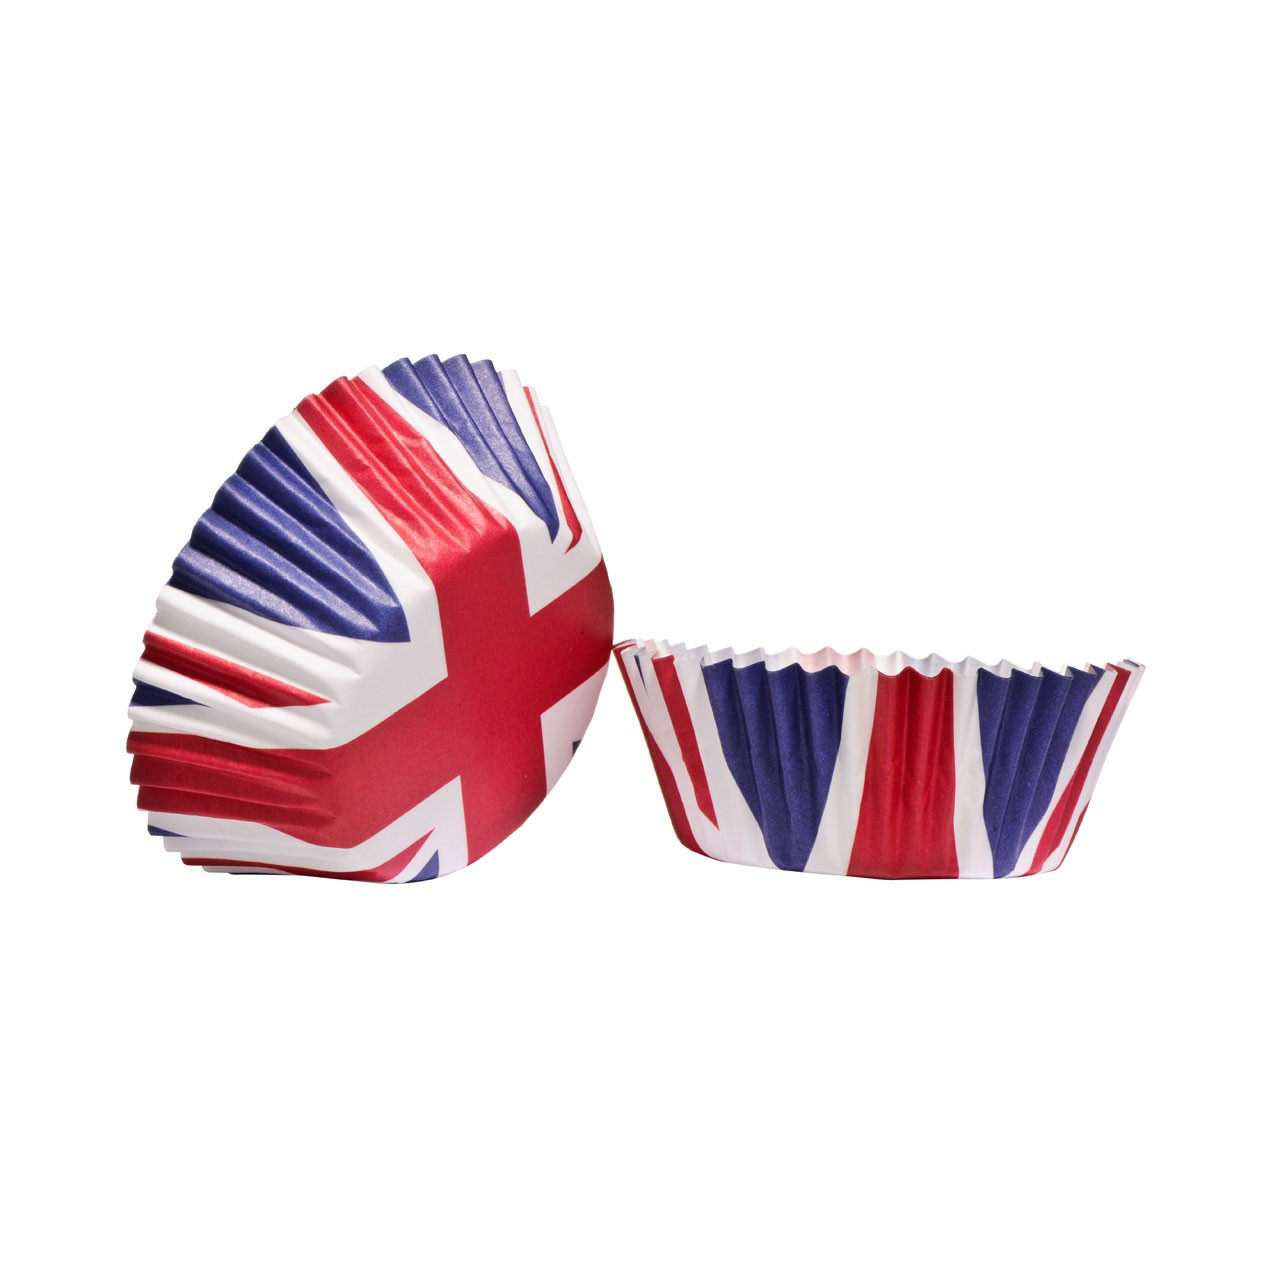 Medium Cupcake Cases Union Jack 60pcs